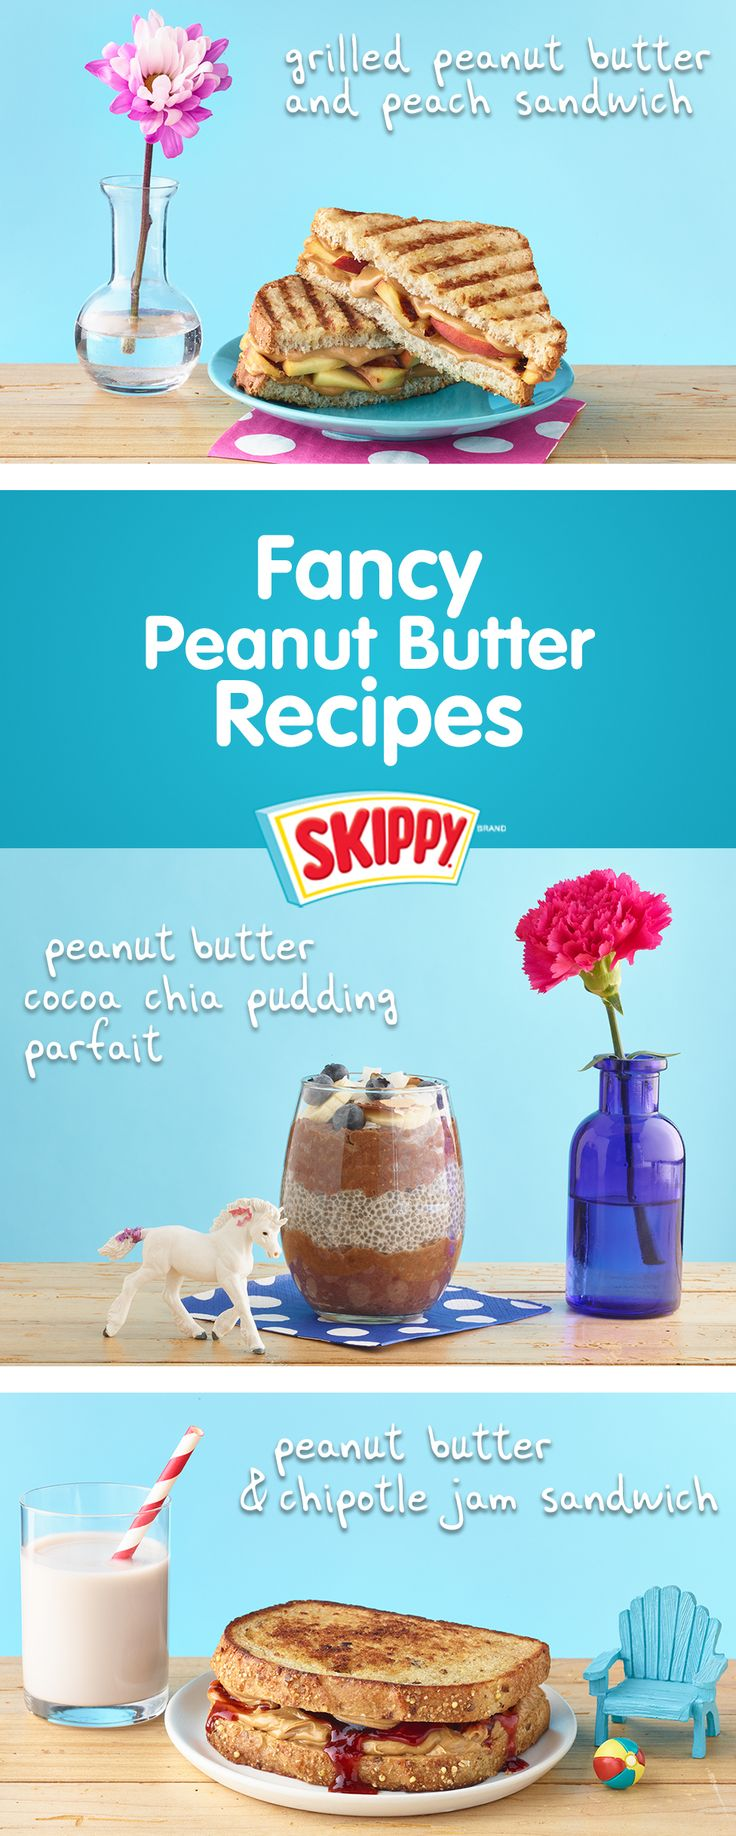 FancEE ShmancEE recipes are easEE with SKIPPY® Peanut Butter! Easy Peanut Butter Recipes | Recipe Ideas | Peanut Butter | SKIPPY® Peanut Butter